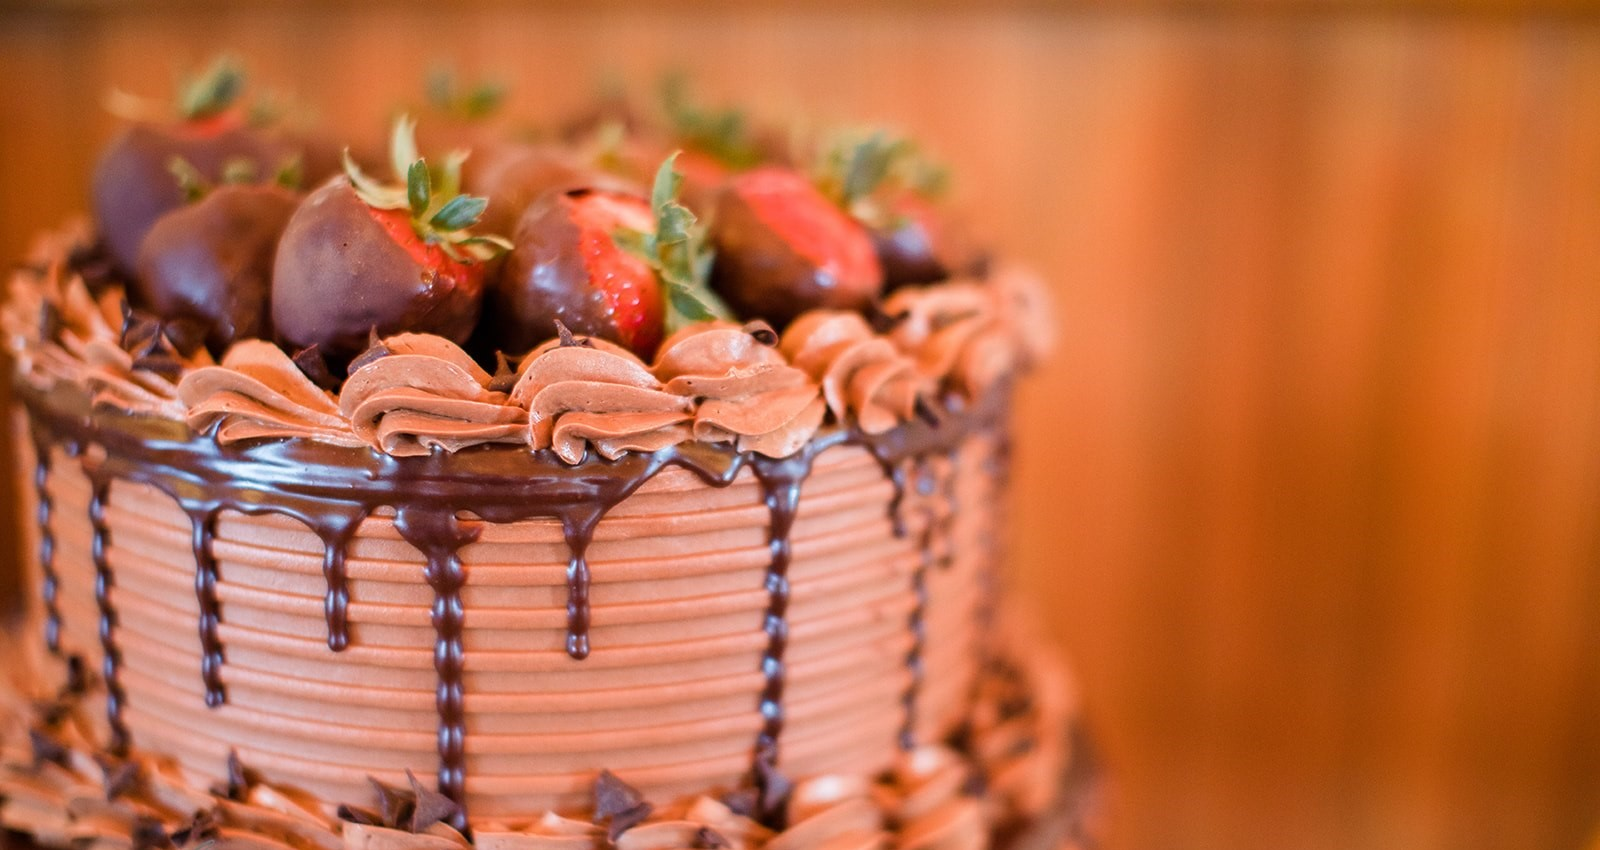 HofmannRanch-Cake-RegaliaPhotography-JenniferCortland-WedgewoodWeddings (48)-1